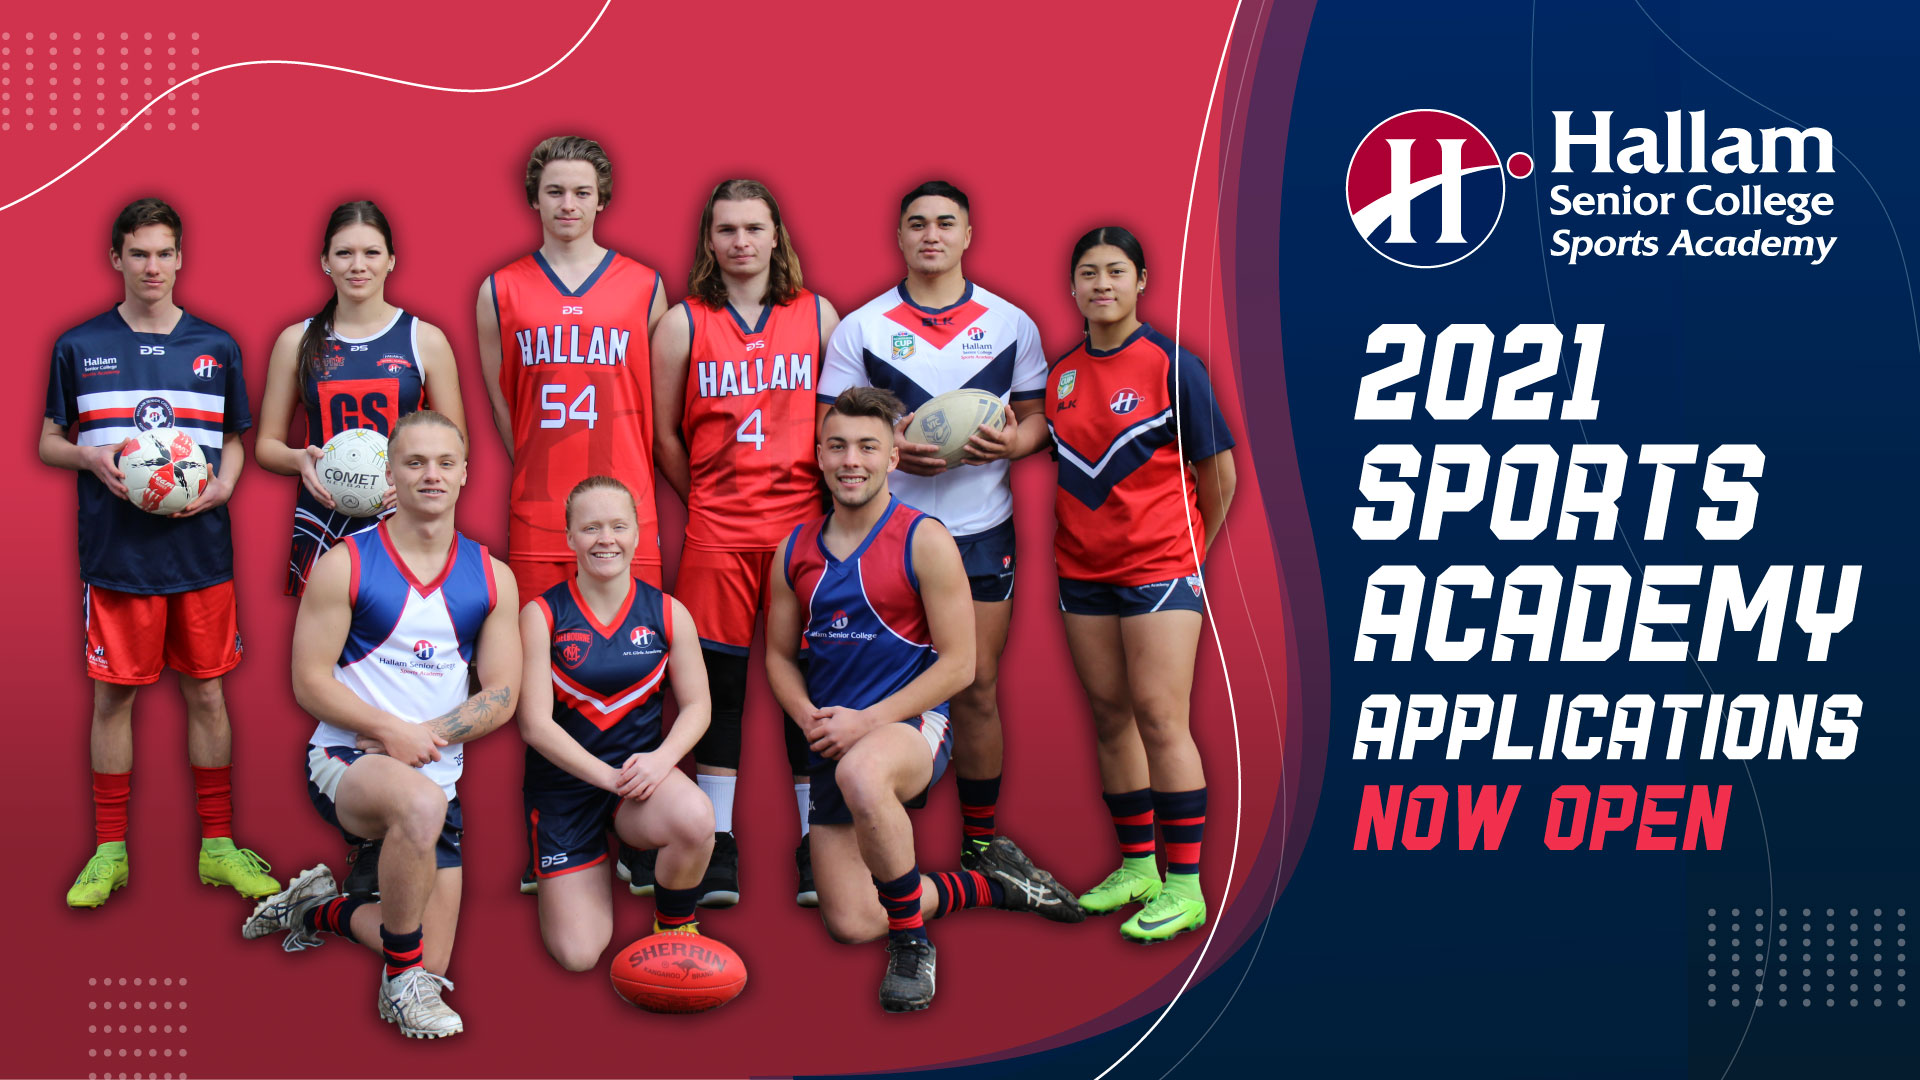 2021 Sports Academy Applications Now Open